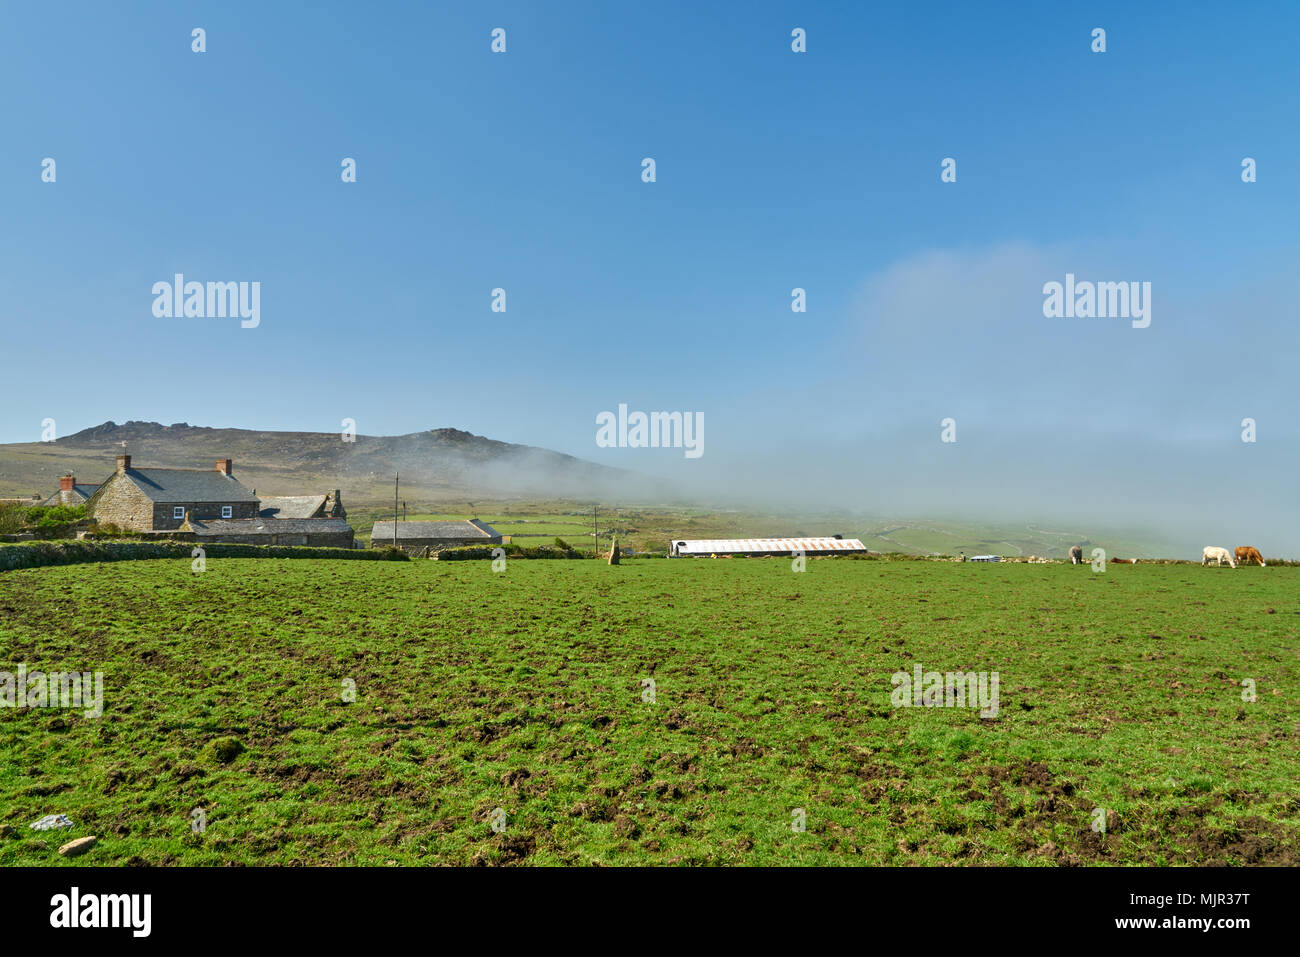 Higher Porthmeor Cornwall UK, Sunday 6 May 2018, The mist clears in West Cornwall to reveal a standing stone in the field and Carn Galva in the background. today looks set to be a fine Bank Holiday Sunday for much of the UK. Credit: Samuel Davey/Alamy Live News - Stock Image